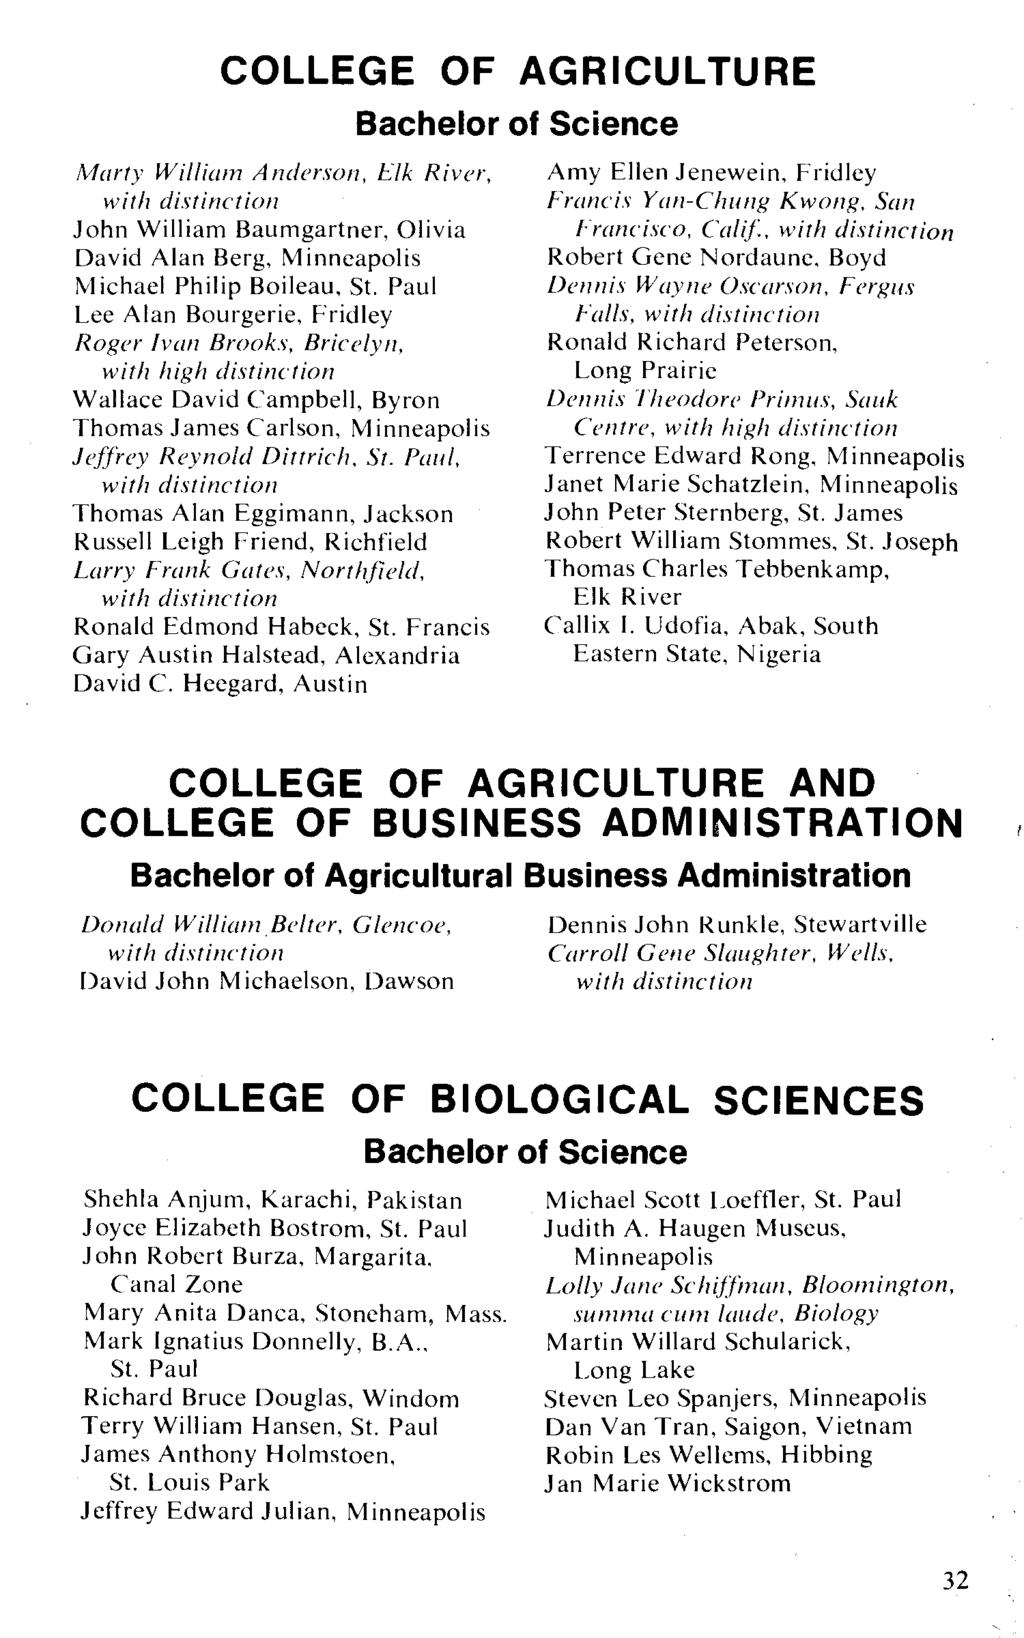 COLLEGE OF AGRICULTURE Marty William Anderson, tjk River, John William Baumgartner, Olivia David Alan Berg, Michael Philip Boileau, St.